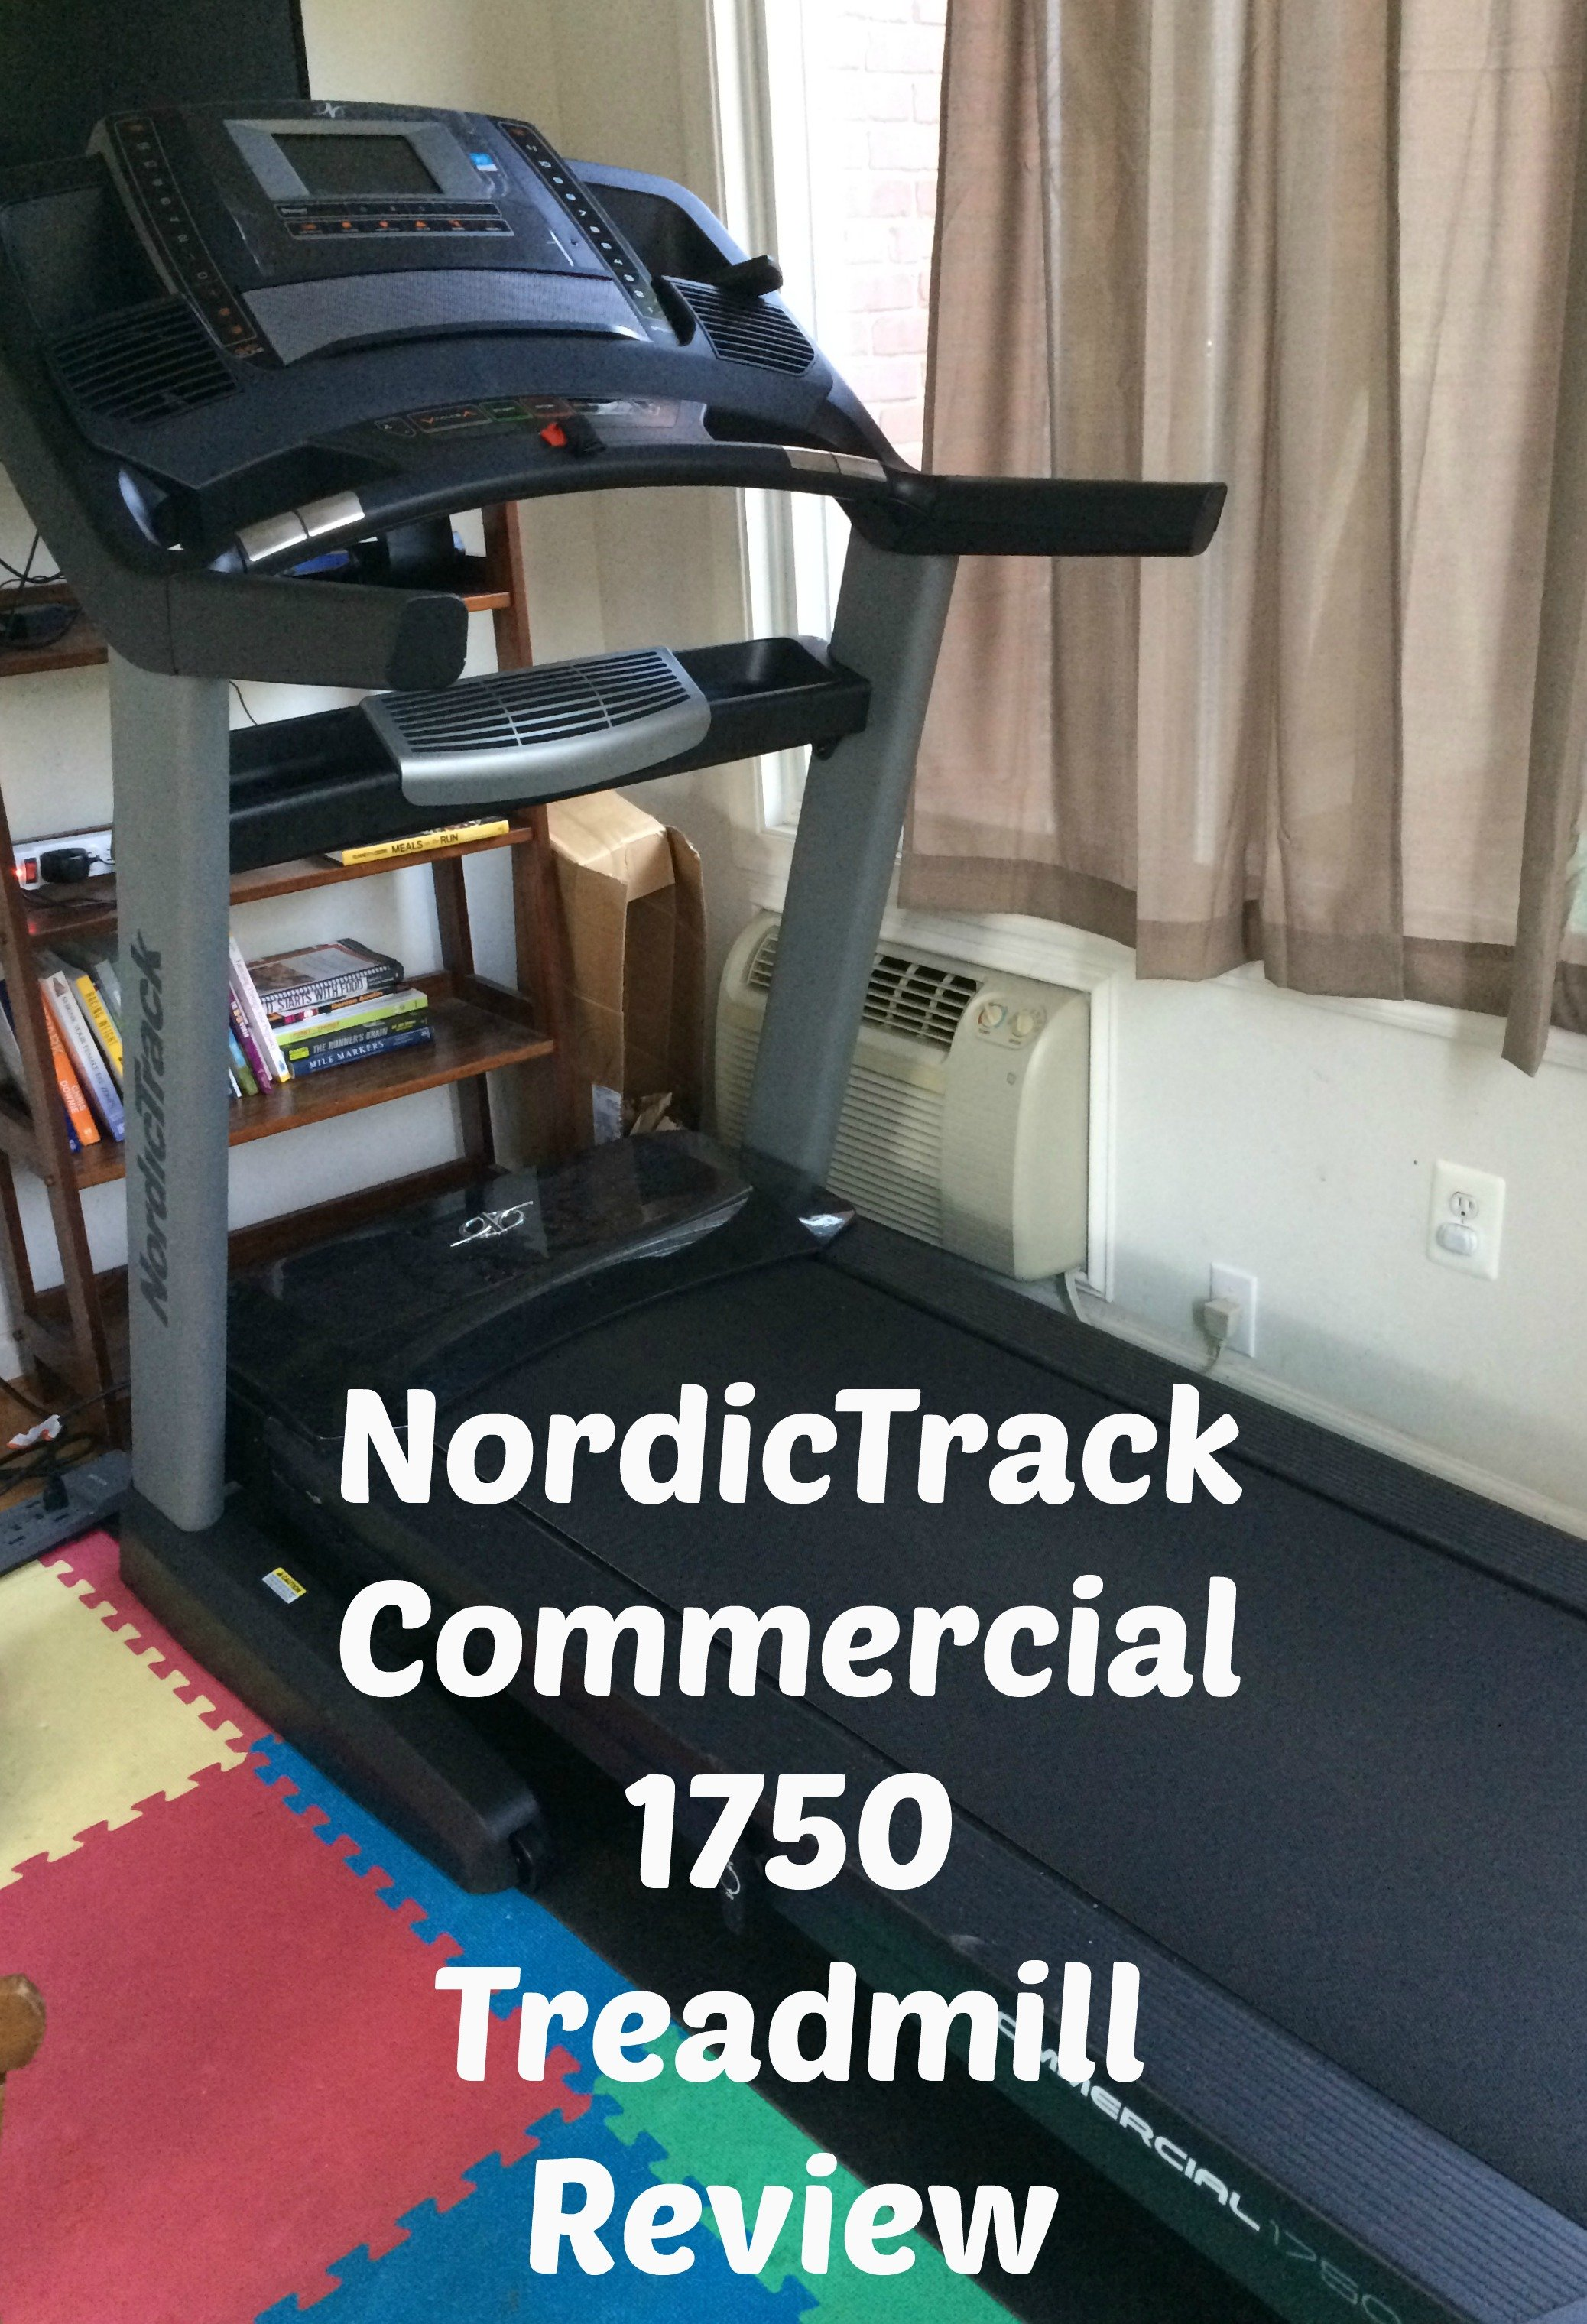 NordicTrack Commercial treadmill review 2